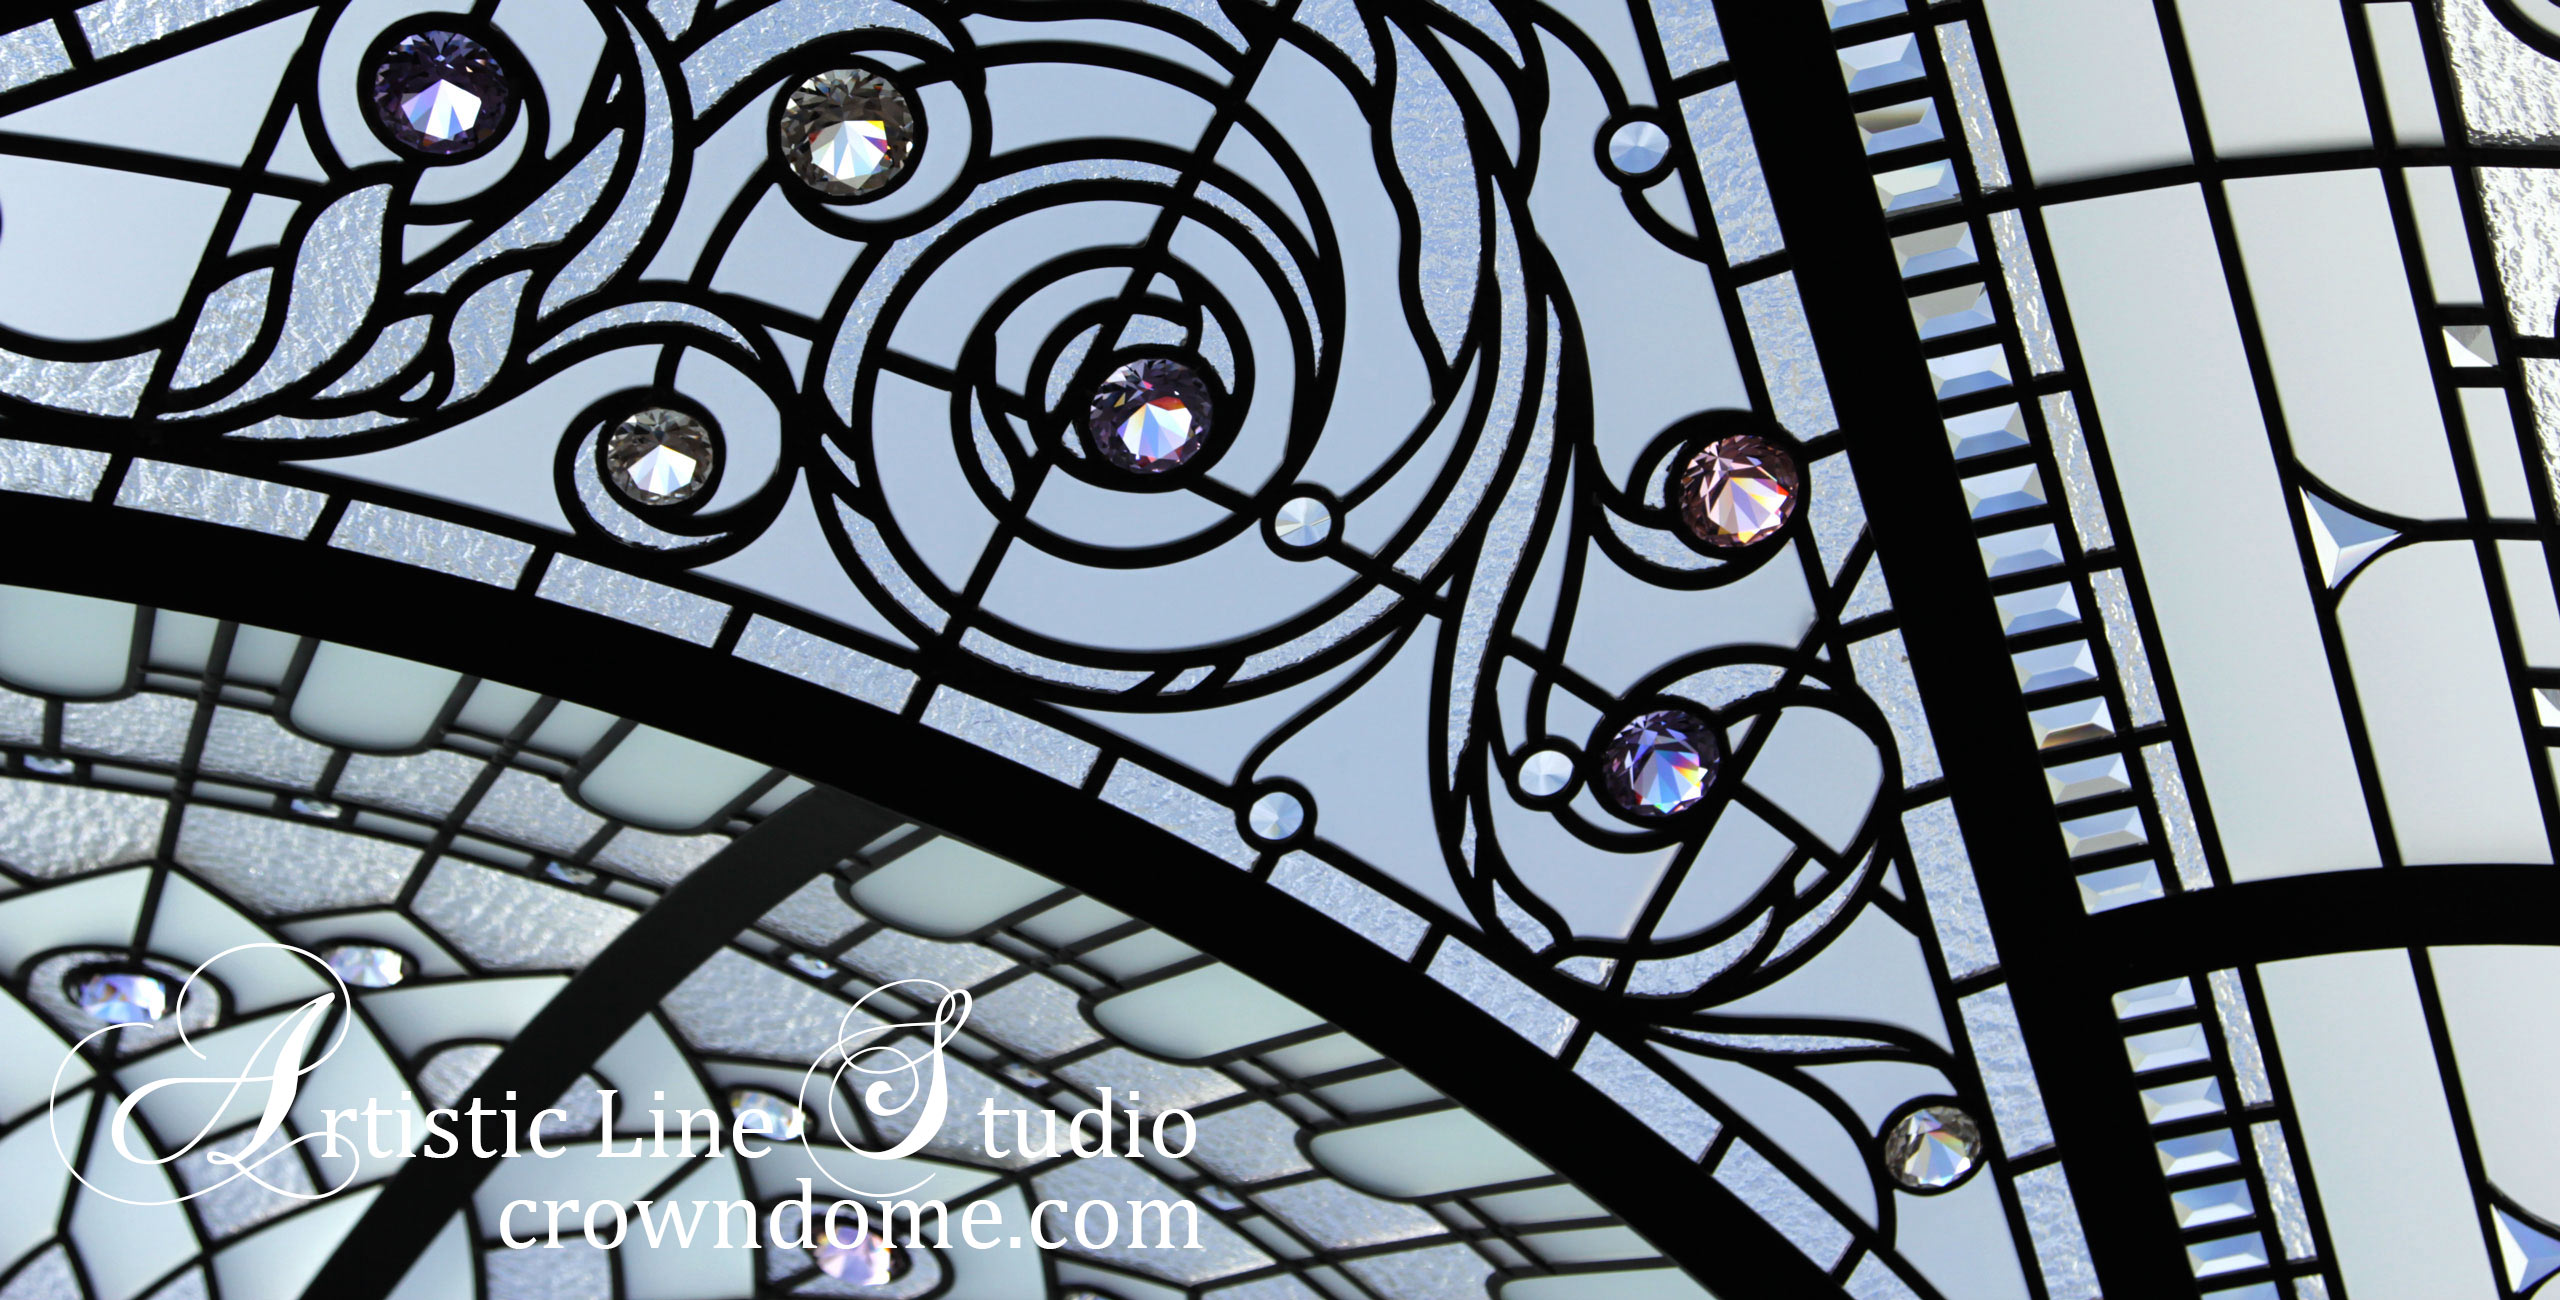 Leaded glass dome design for a private residence glass ornamental skylight ceiling